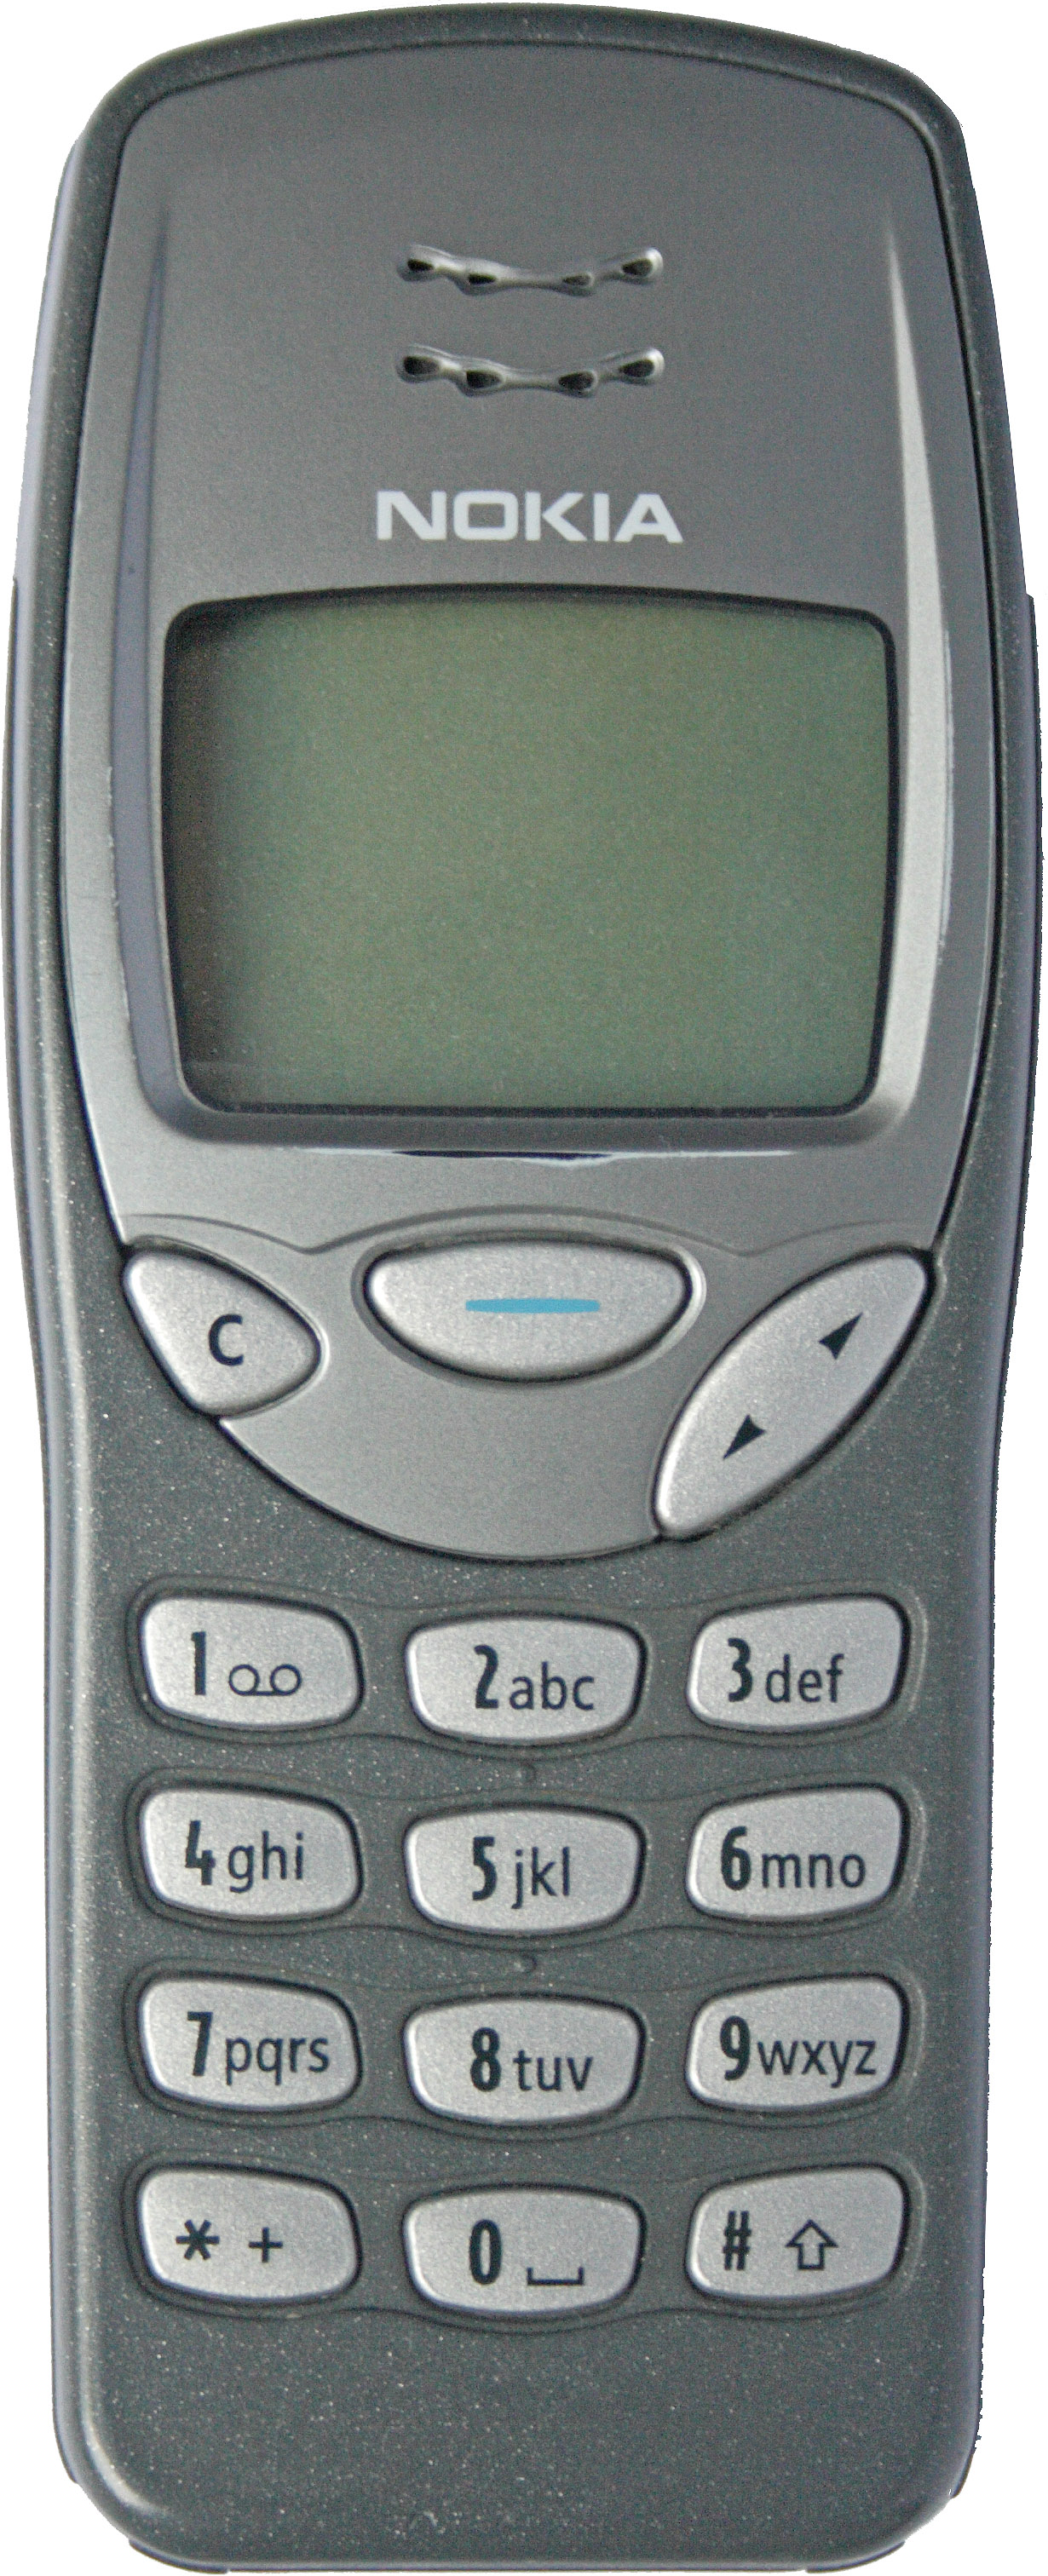 Image result for Nokia 3210 (1999)